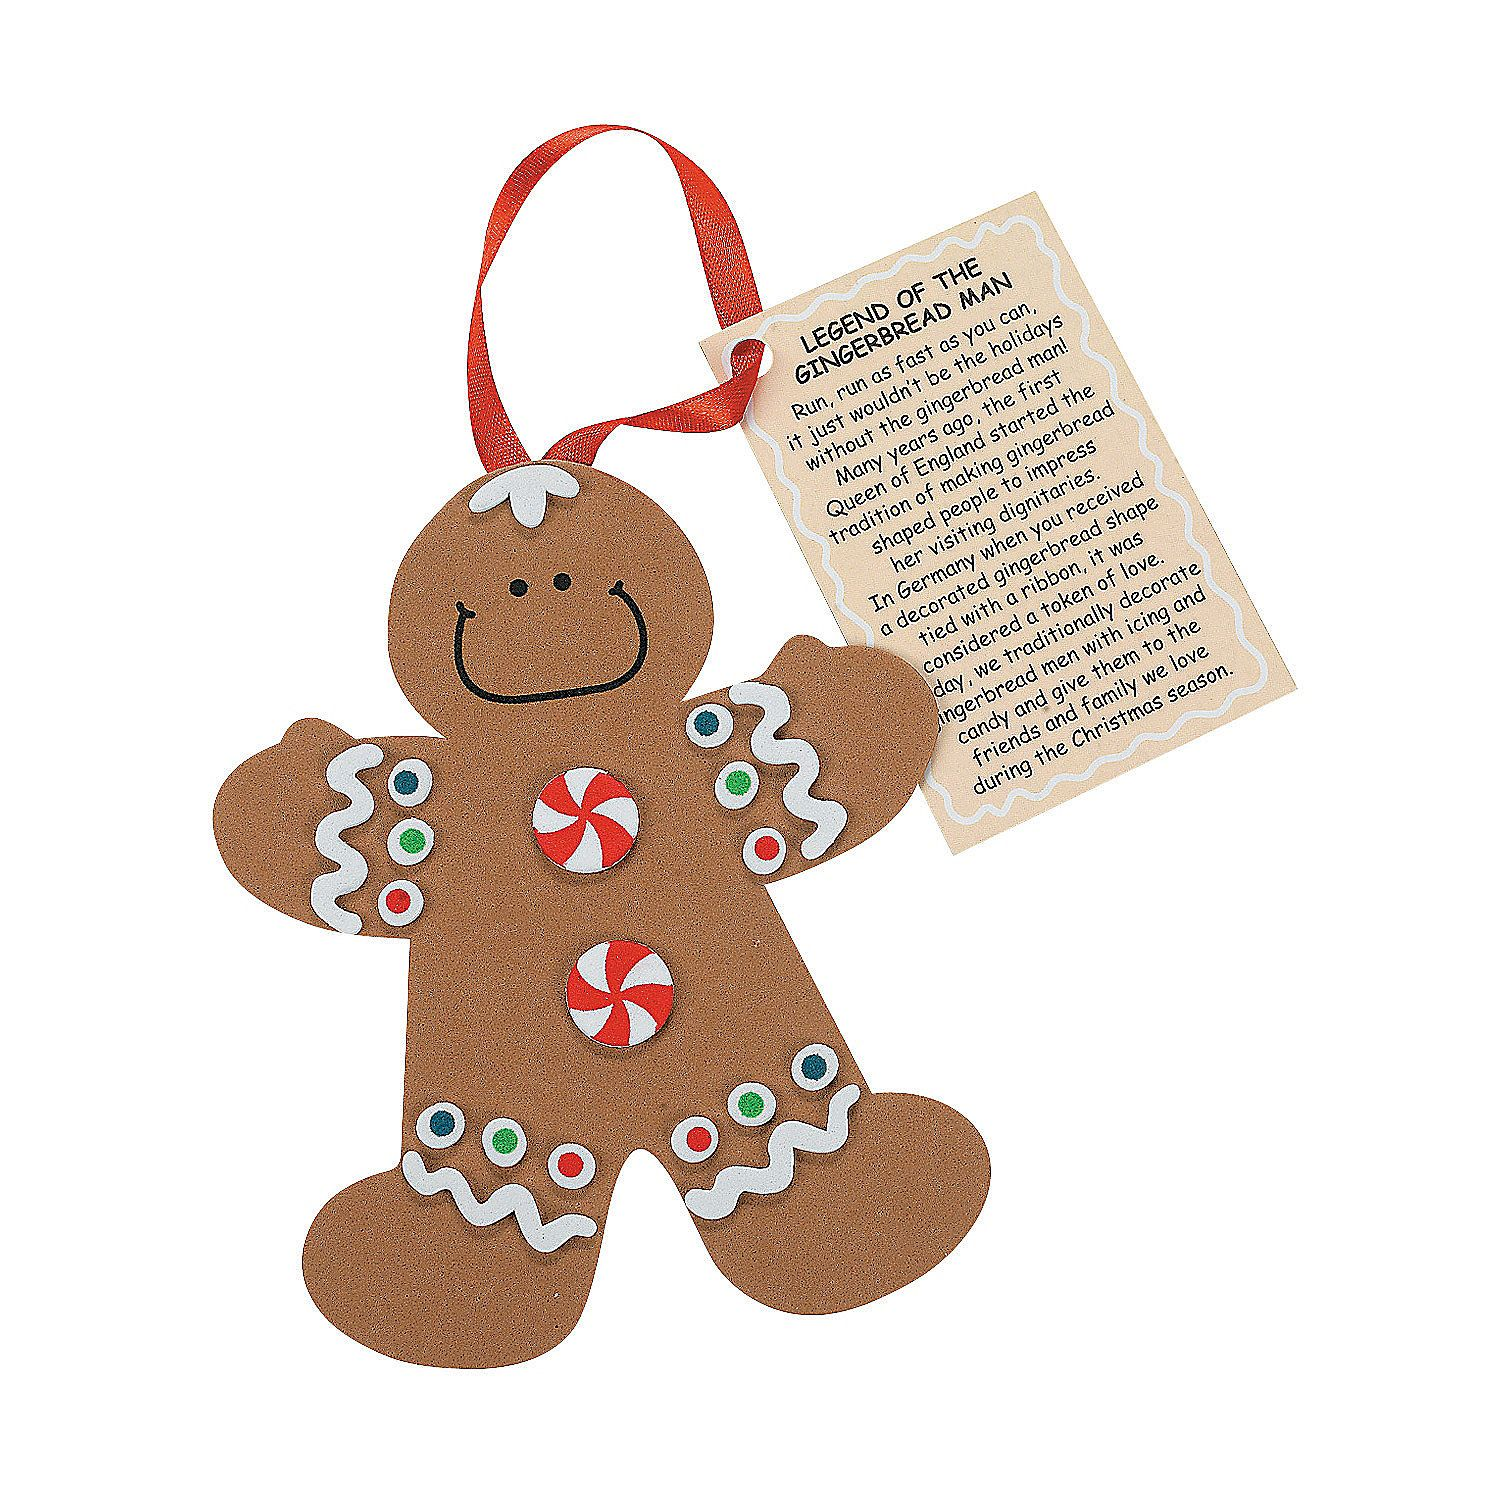 legend of the gingerbread man christmas ornament craft kit orientaltradingcom - Gingerbread Man Christmas Decorations